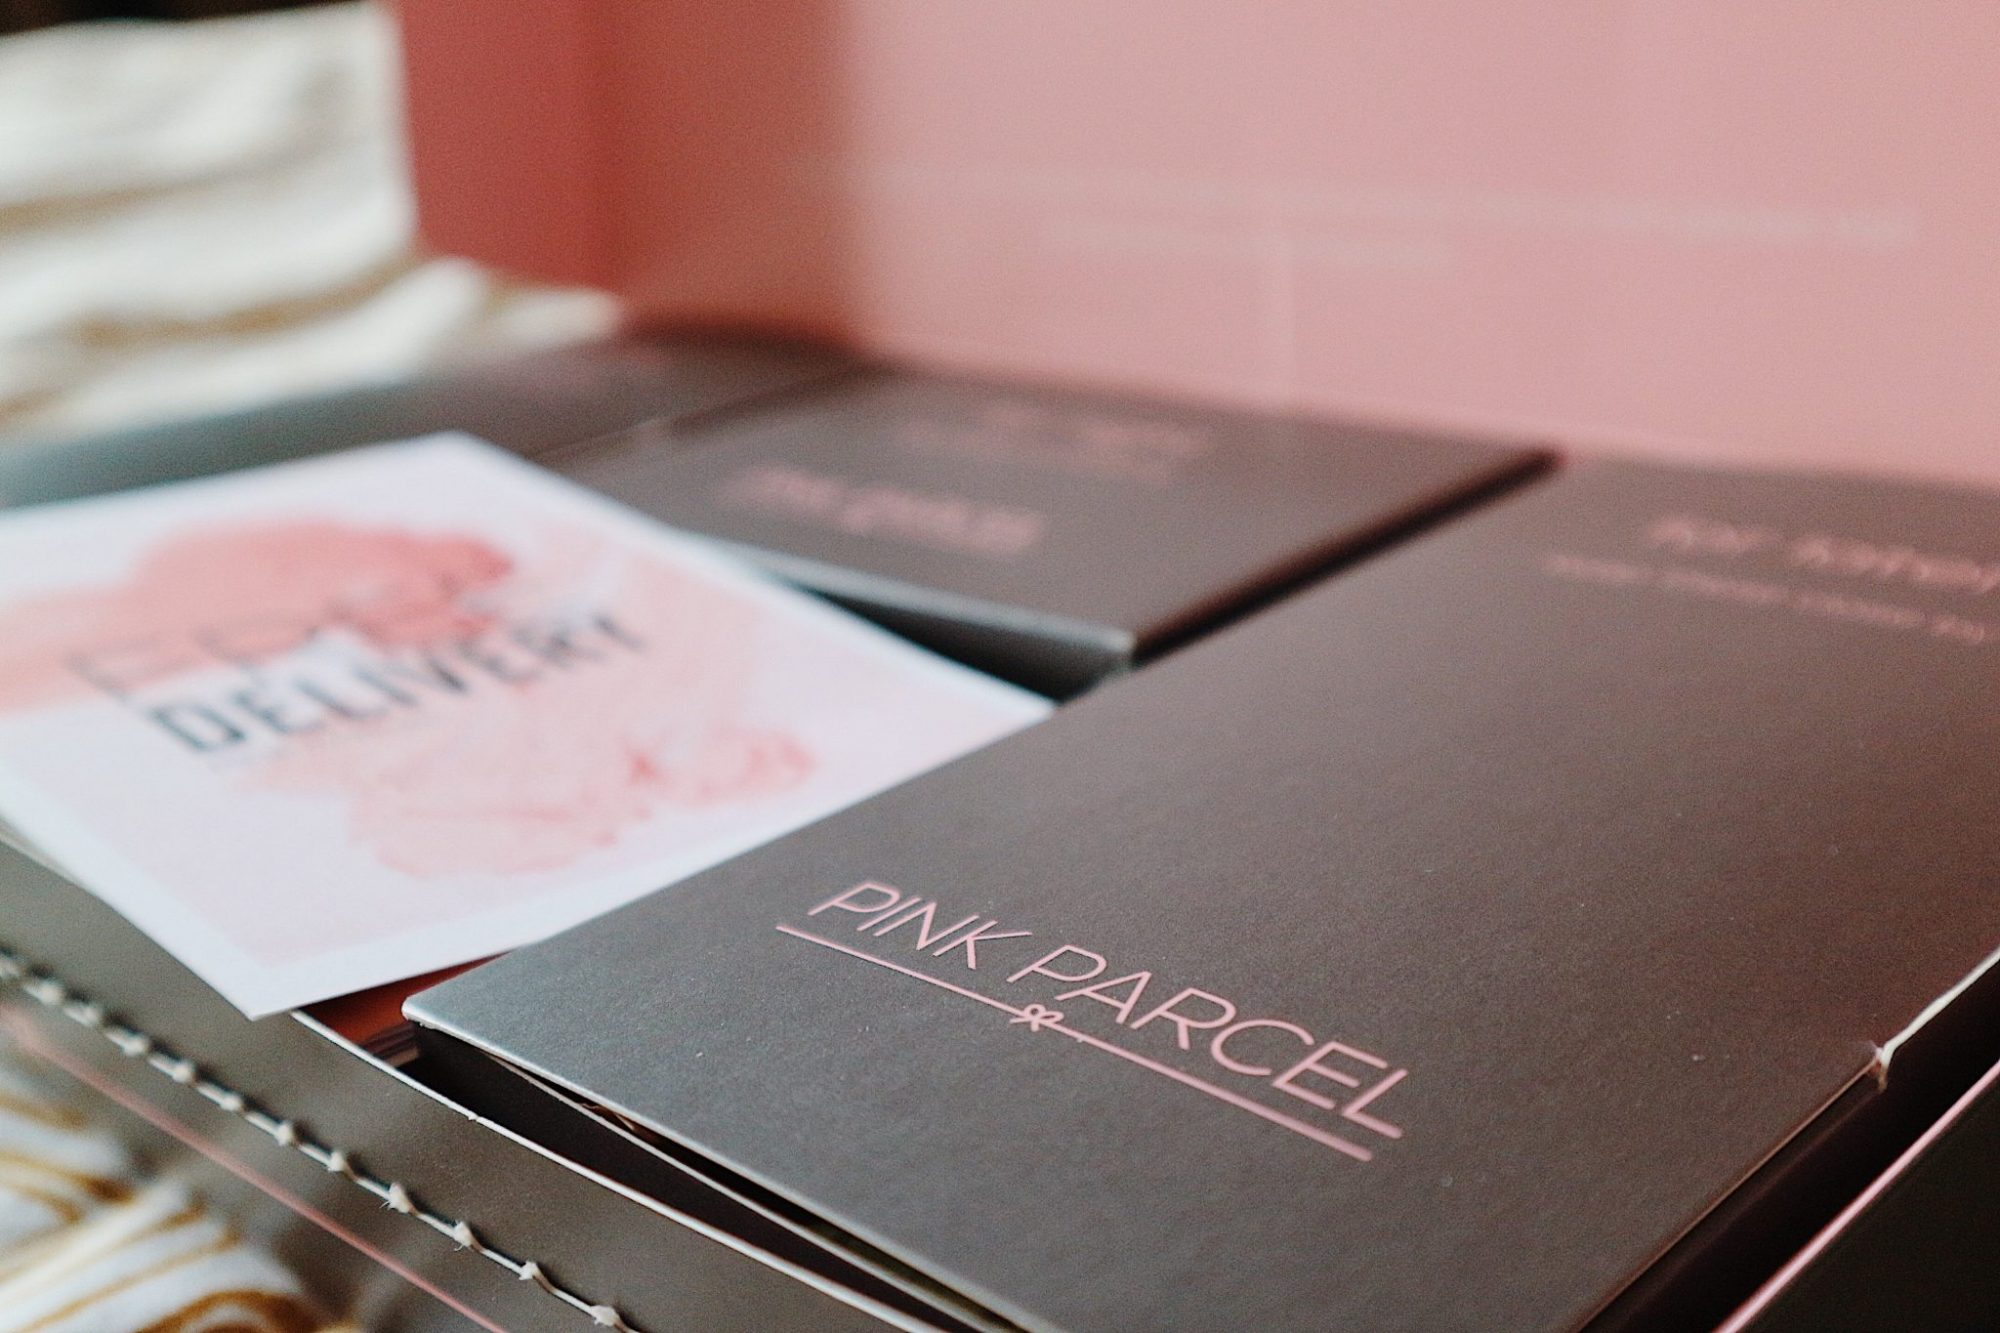 Pink Parcel Period Subscription Box